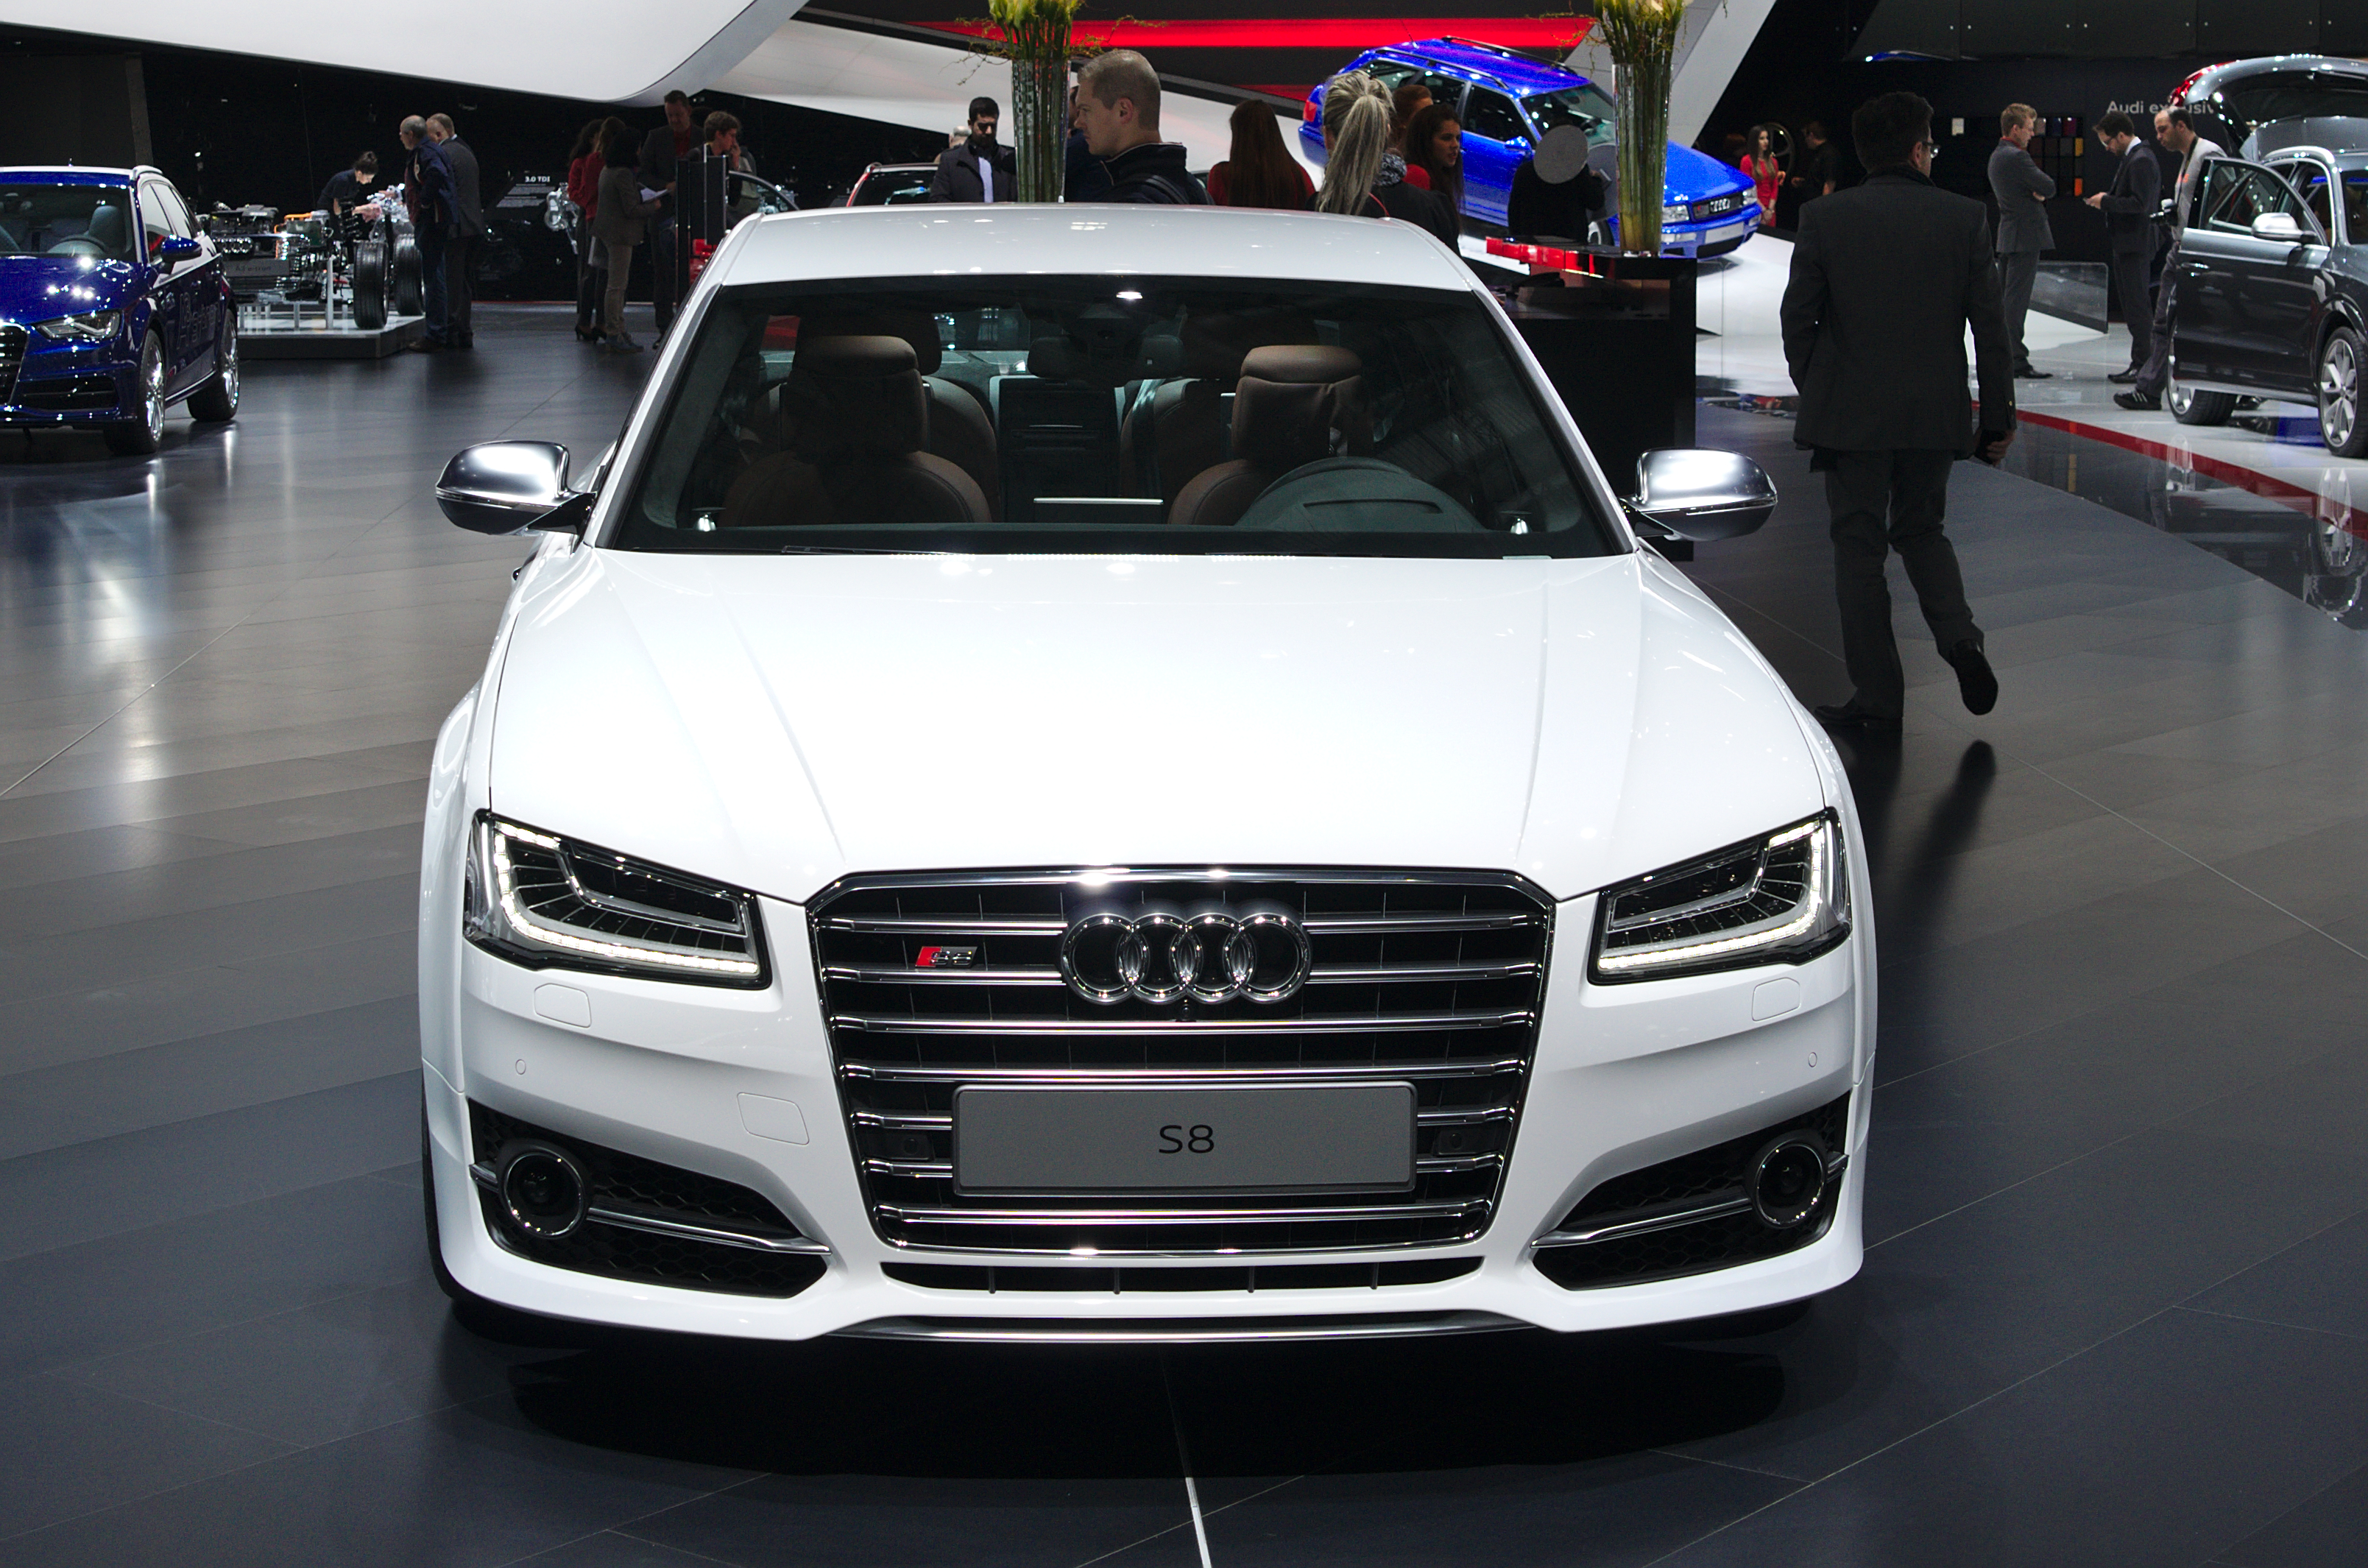 file salon de l 39 auto de gen ve 2014 20140305 audi s8 wikimedia commons. Black Bedroom Furniture Sets. Home Design Ideas